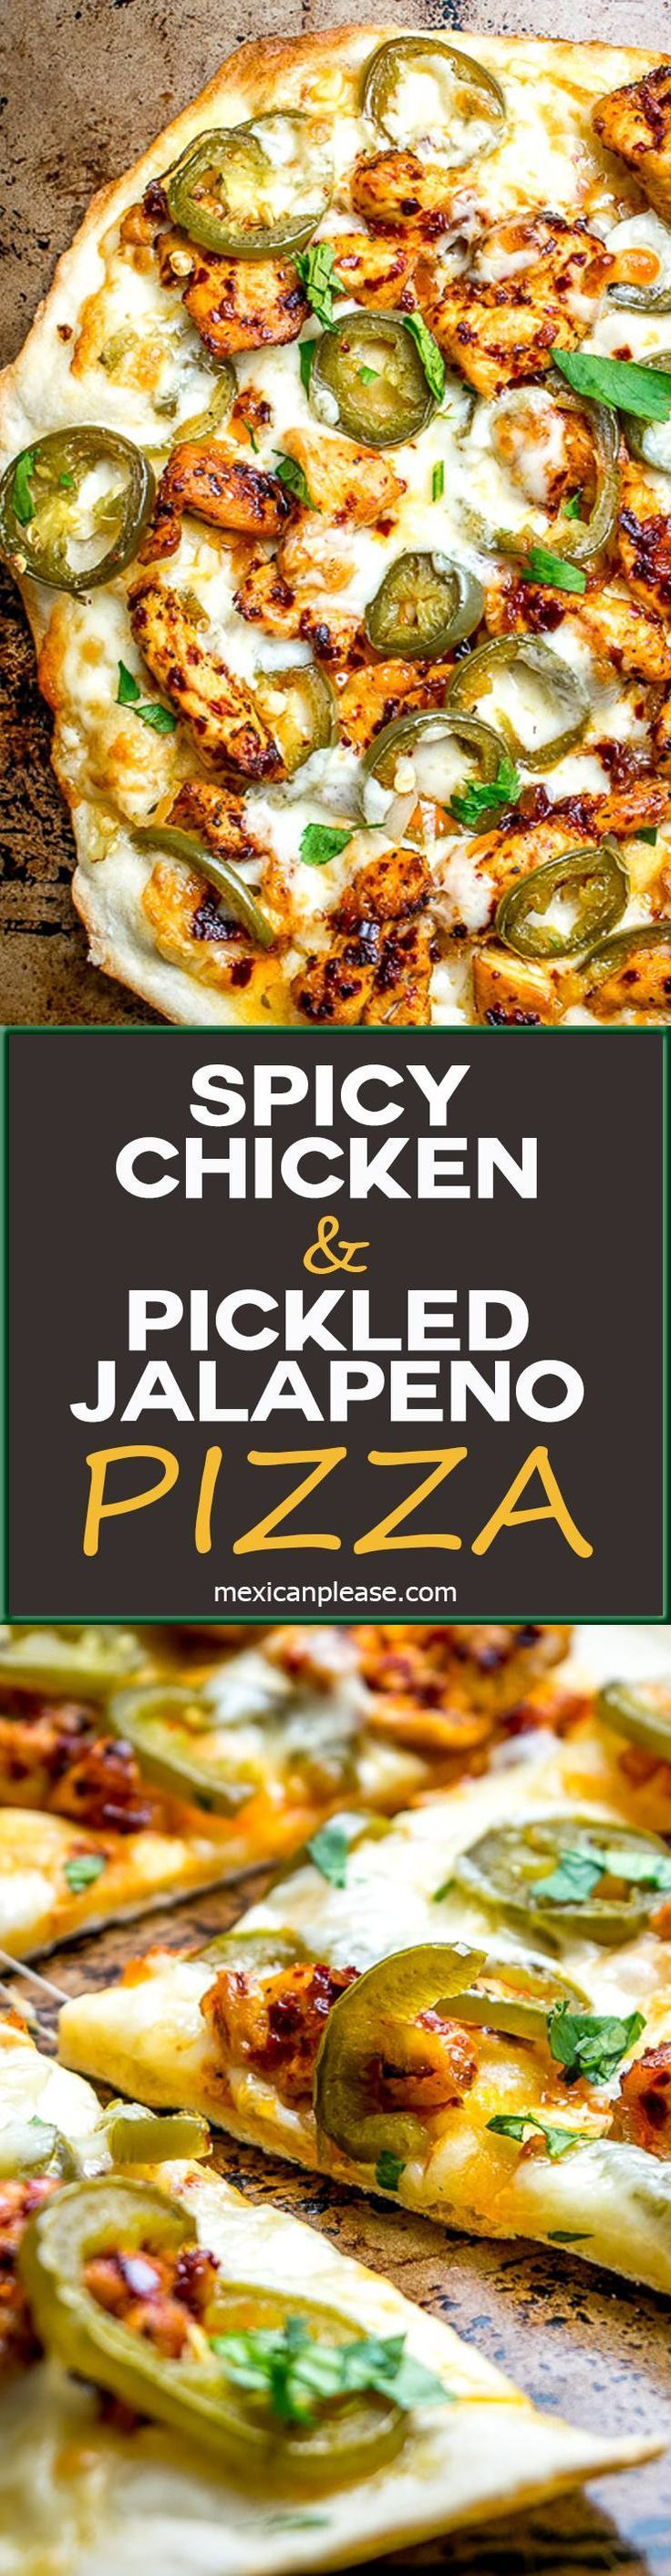 This Spicy Chicken and Pickled Jalapeno Pizza is the perfect example of Mexican cooking ingredients influencing just about everything in my kitchen. A super easy and delicious pizza recipe with no spe(Mexican Recipes Easy)